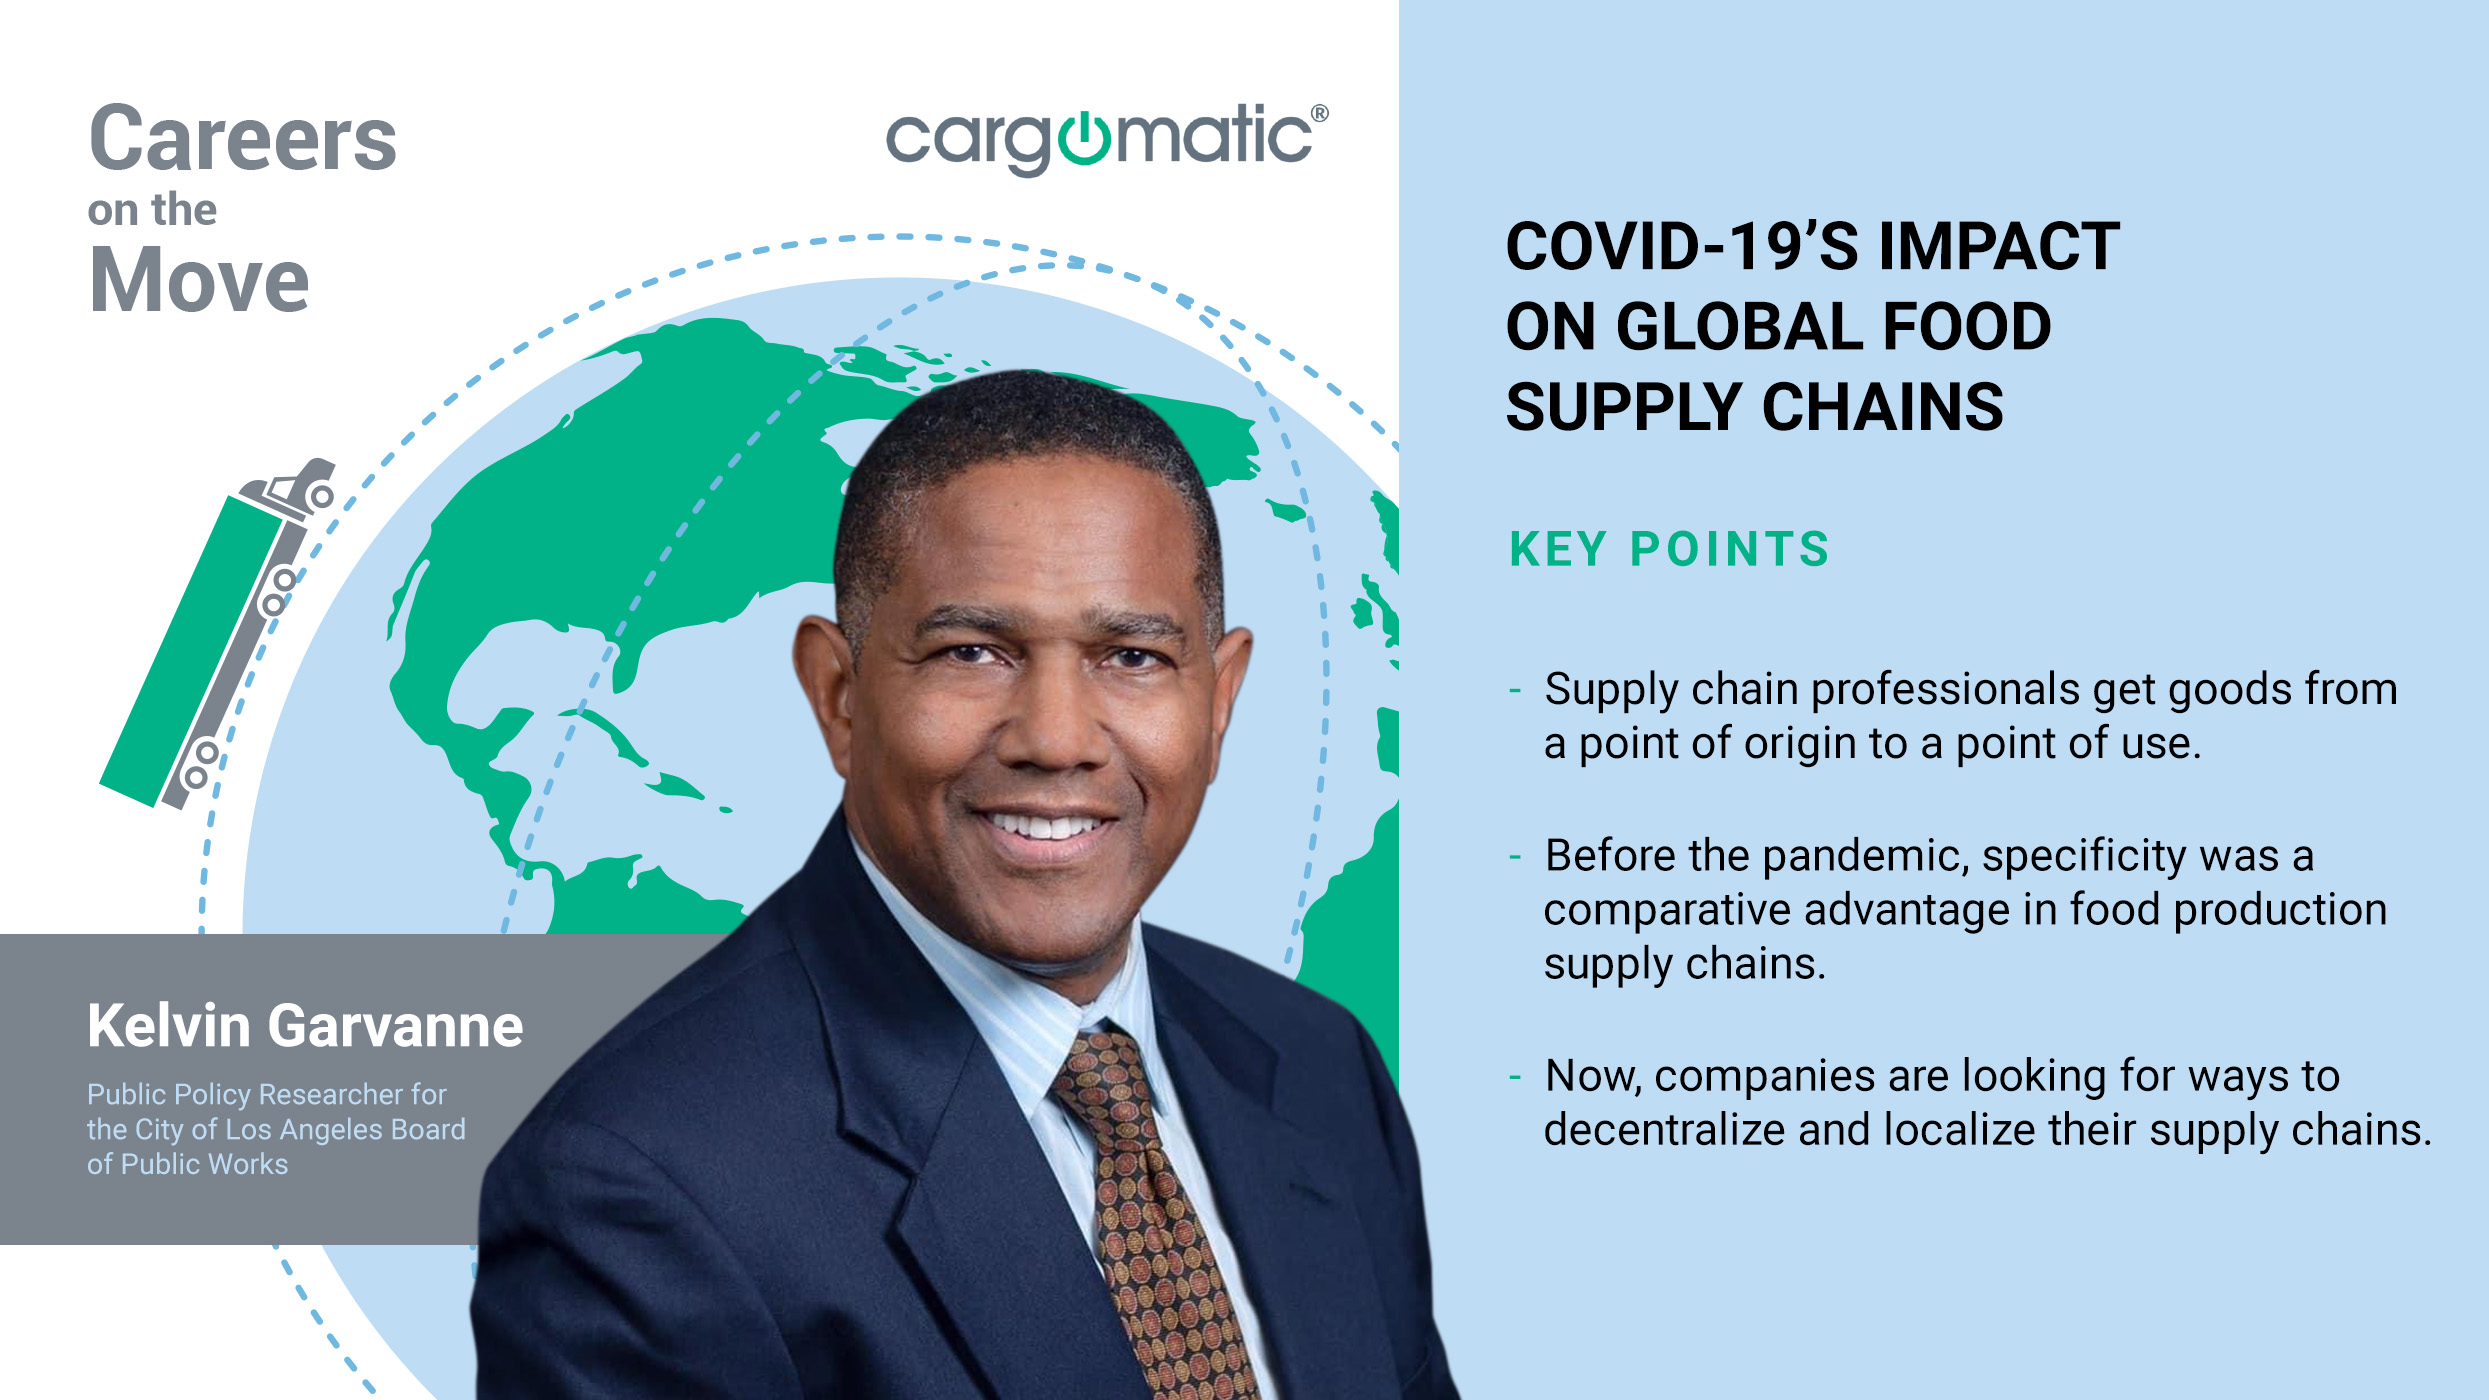 COVID-19's Impact on the Food Supply Chain | Careers on the Move